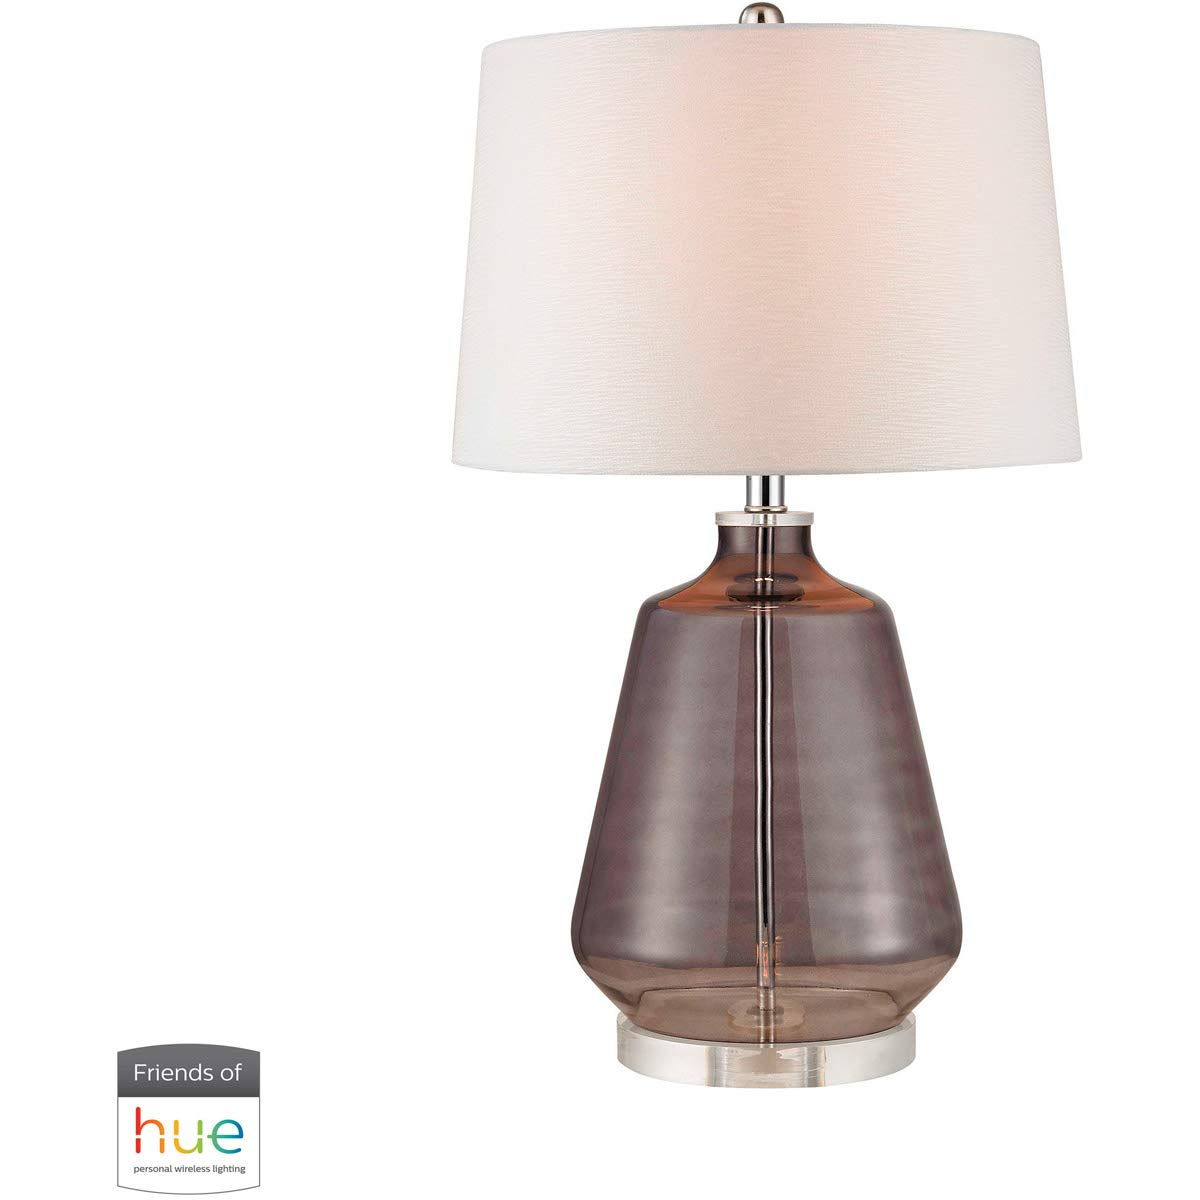 Table lamps 1 light fixtures with grey smoke finish crystal glass material e26 27 60 watts amazon com